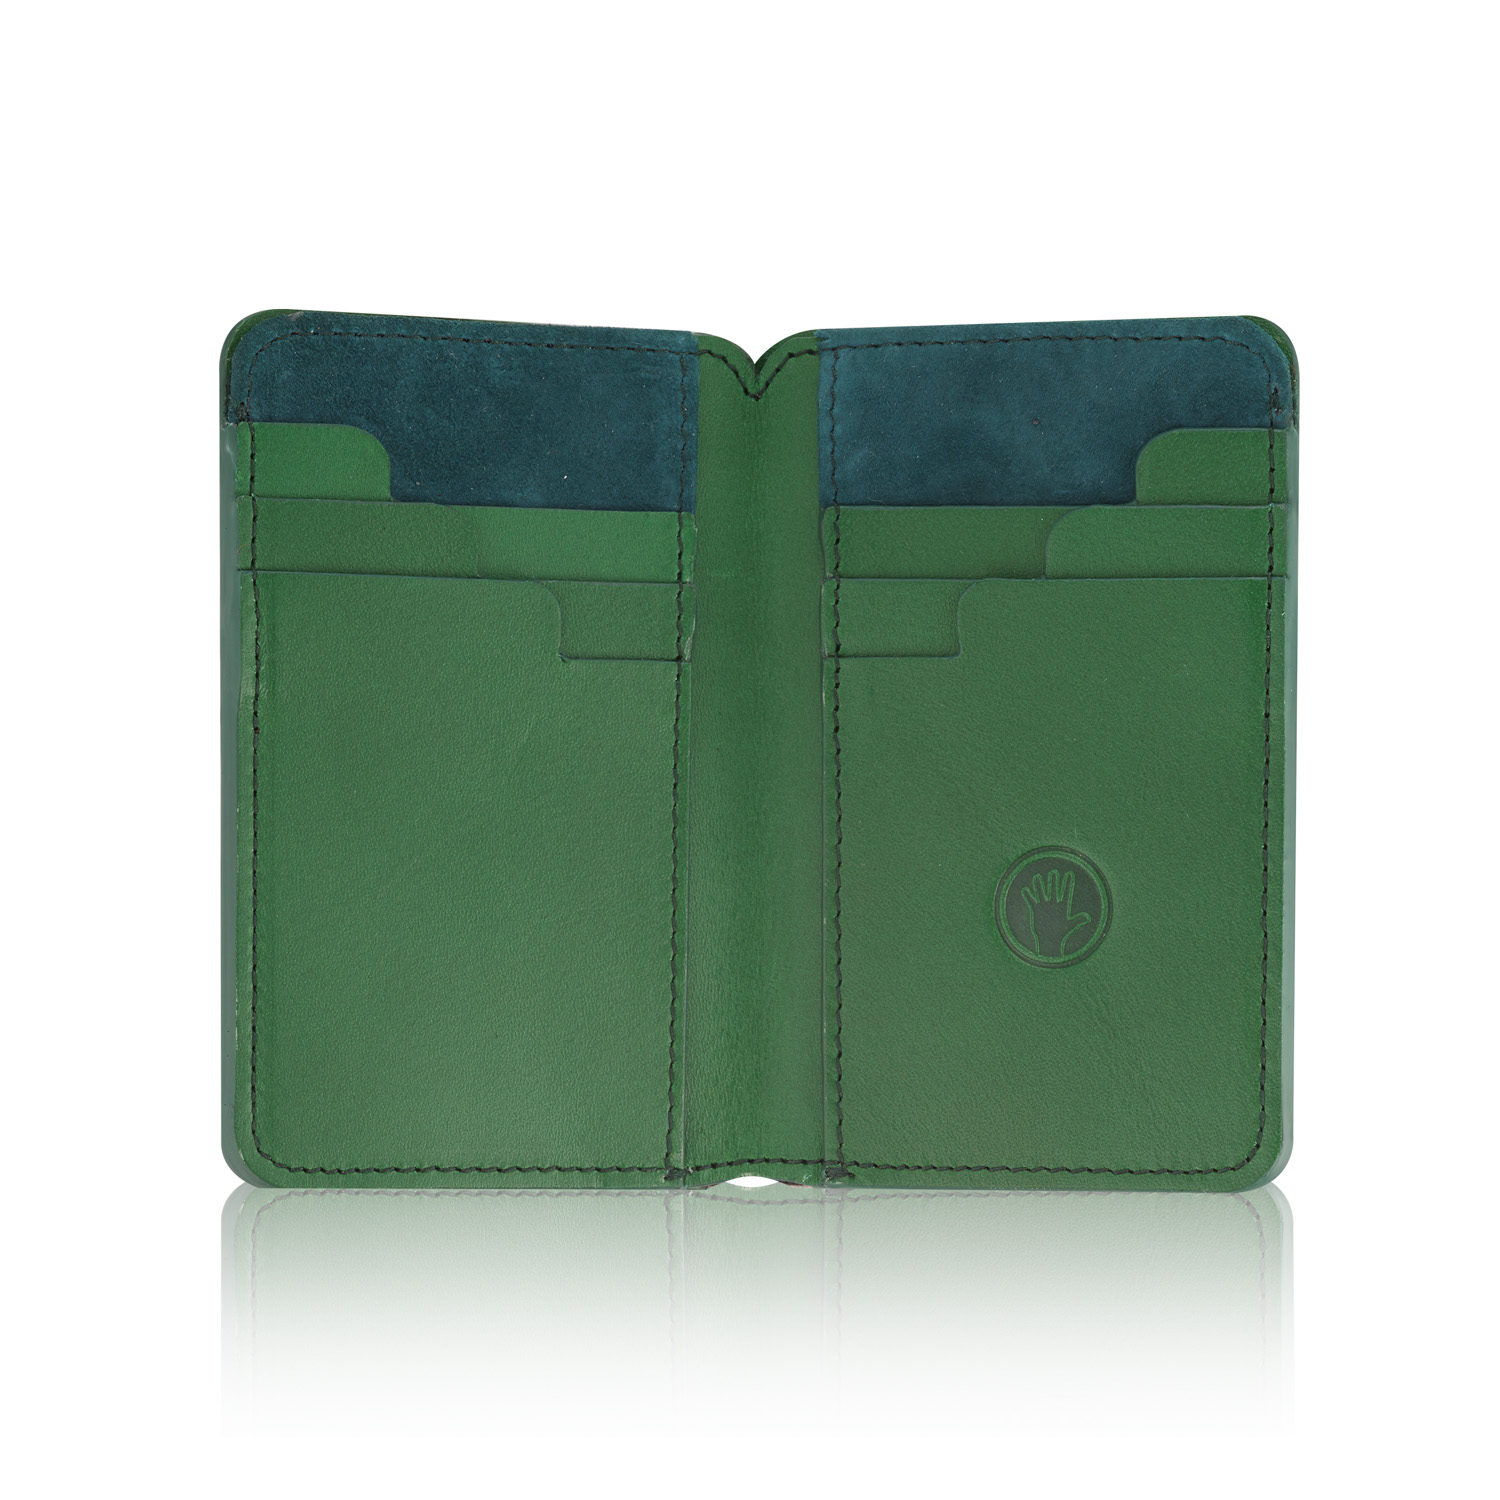 Emerald Stairway Wallet with Luxury Suede